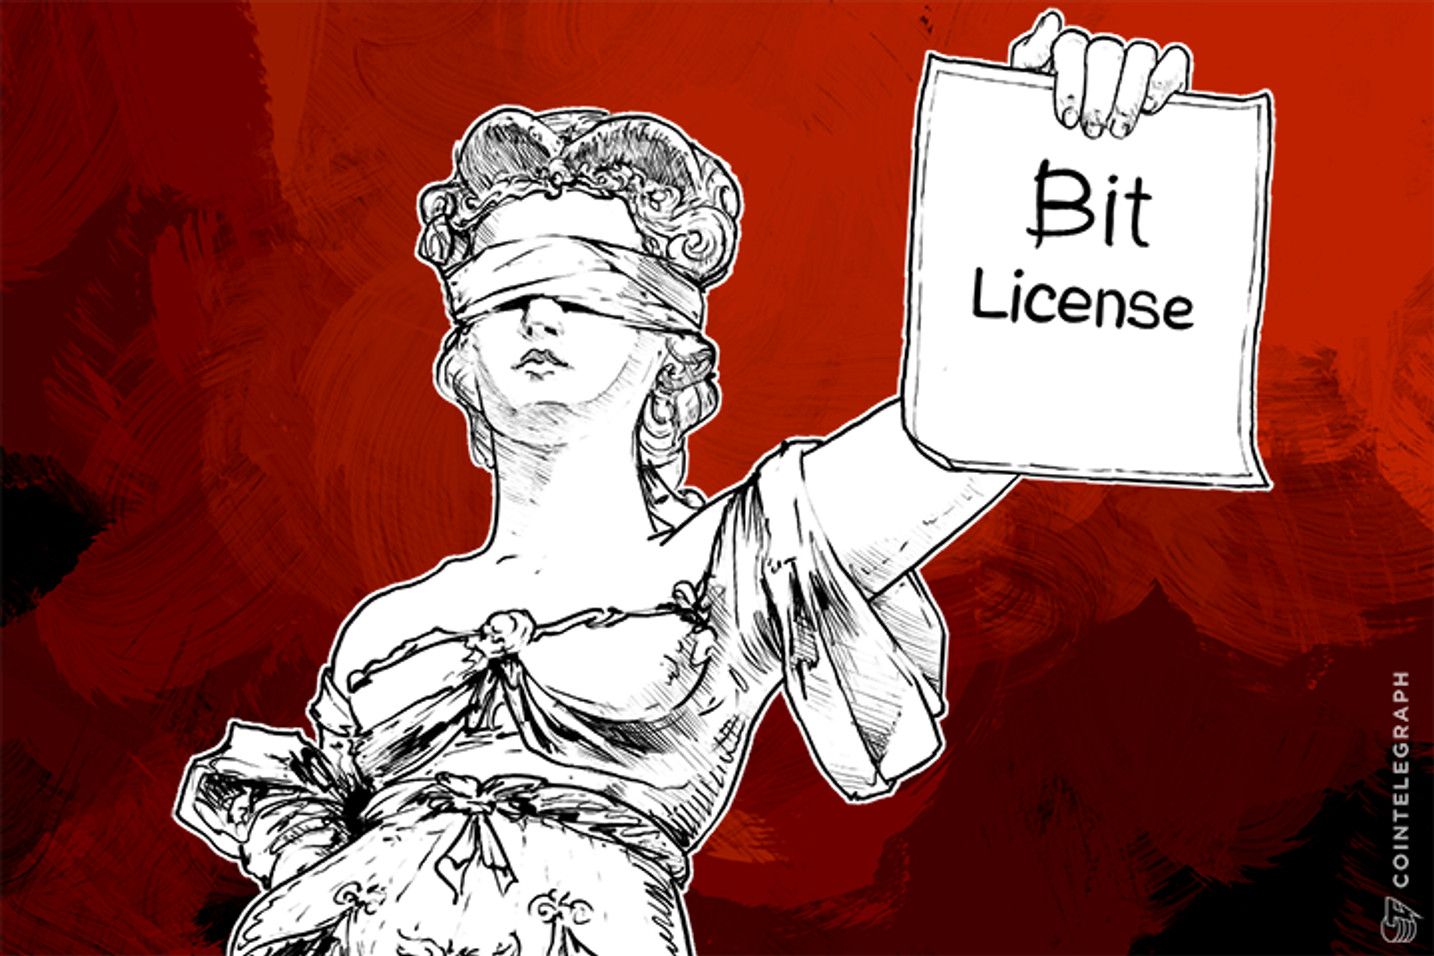 BitLicense Clears First Public Consultation with 'major changes'